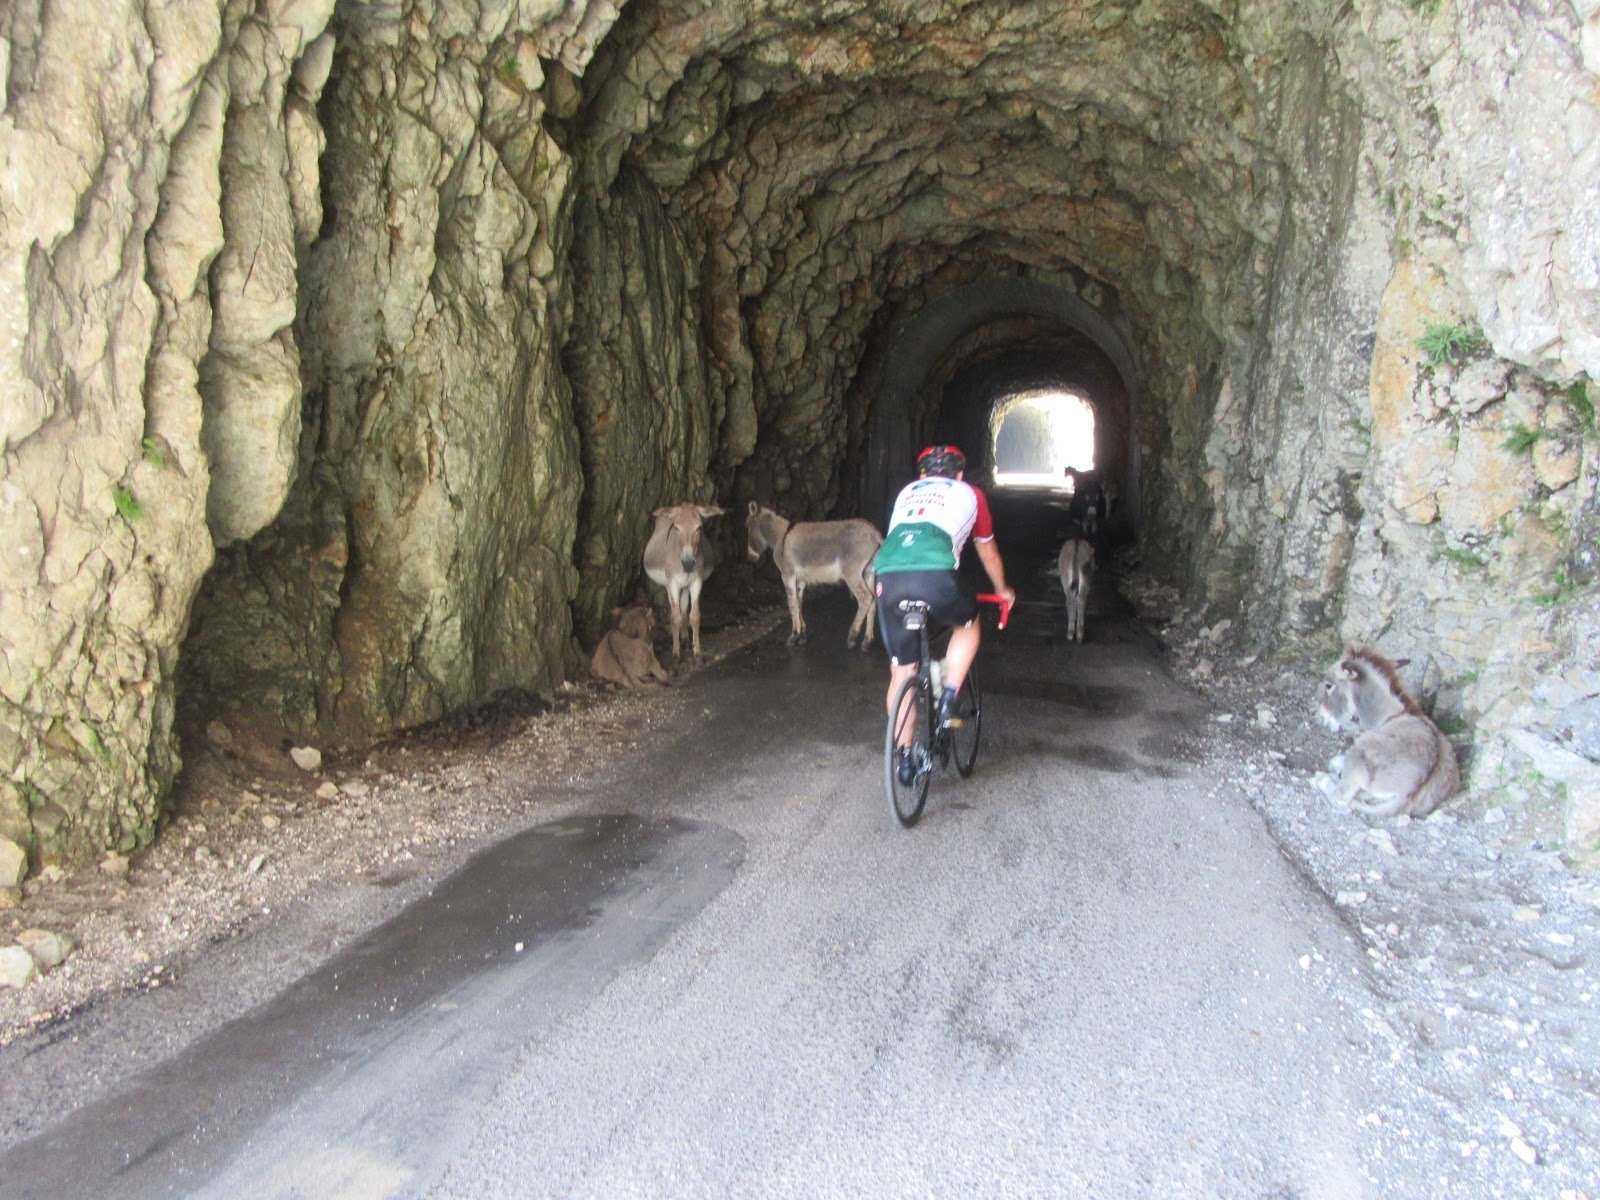 Cycling Monte Grappa from Possagno  - cyclist riding through tunnel near mules